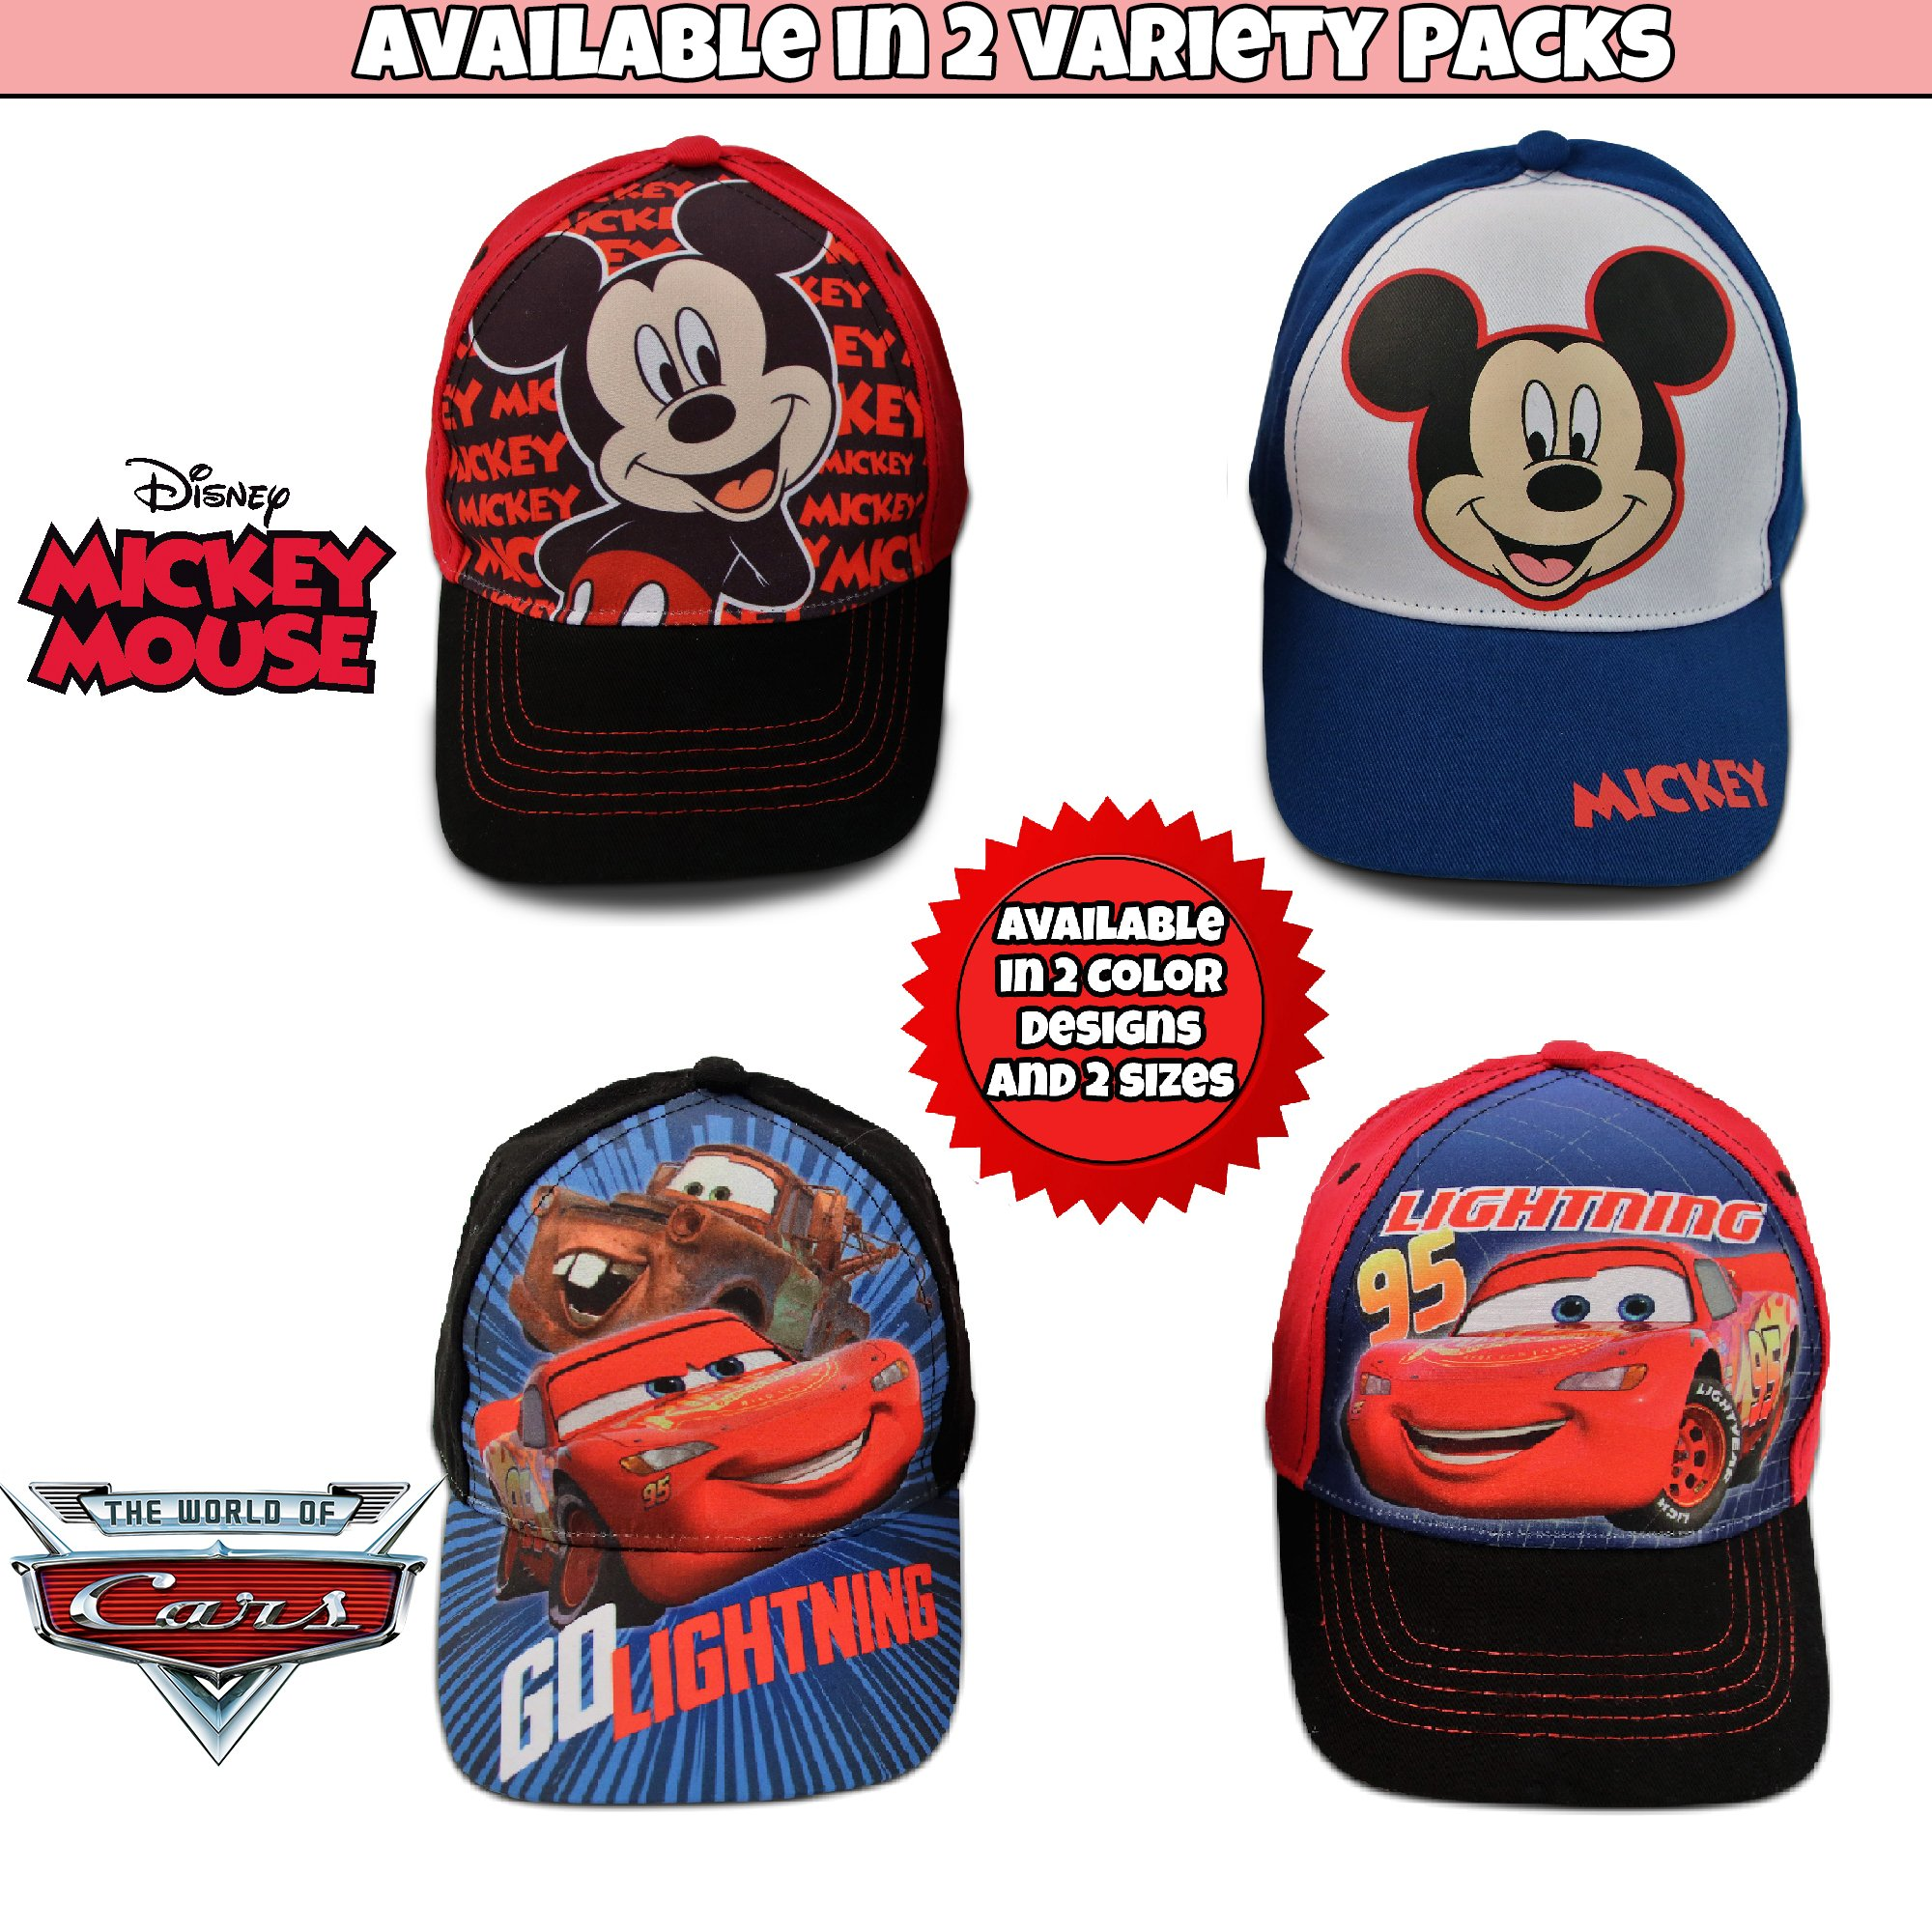 Disney Little Boys Assorted Character Cotton Baseball Cap, 2 Piece Design Set, Age 2-7 (Toddler Boys – Age 2-4 – 51 cm, Mickey Mouse Design – 2 Piece Set) by Disney (Image #5)